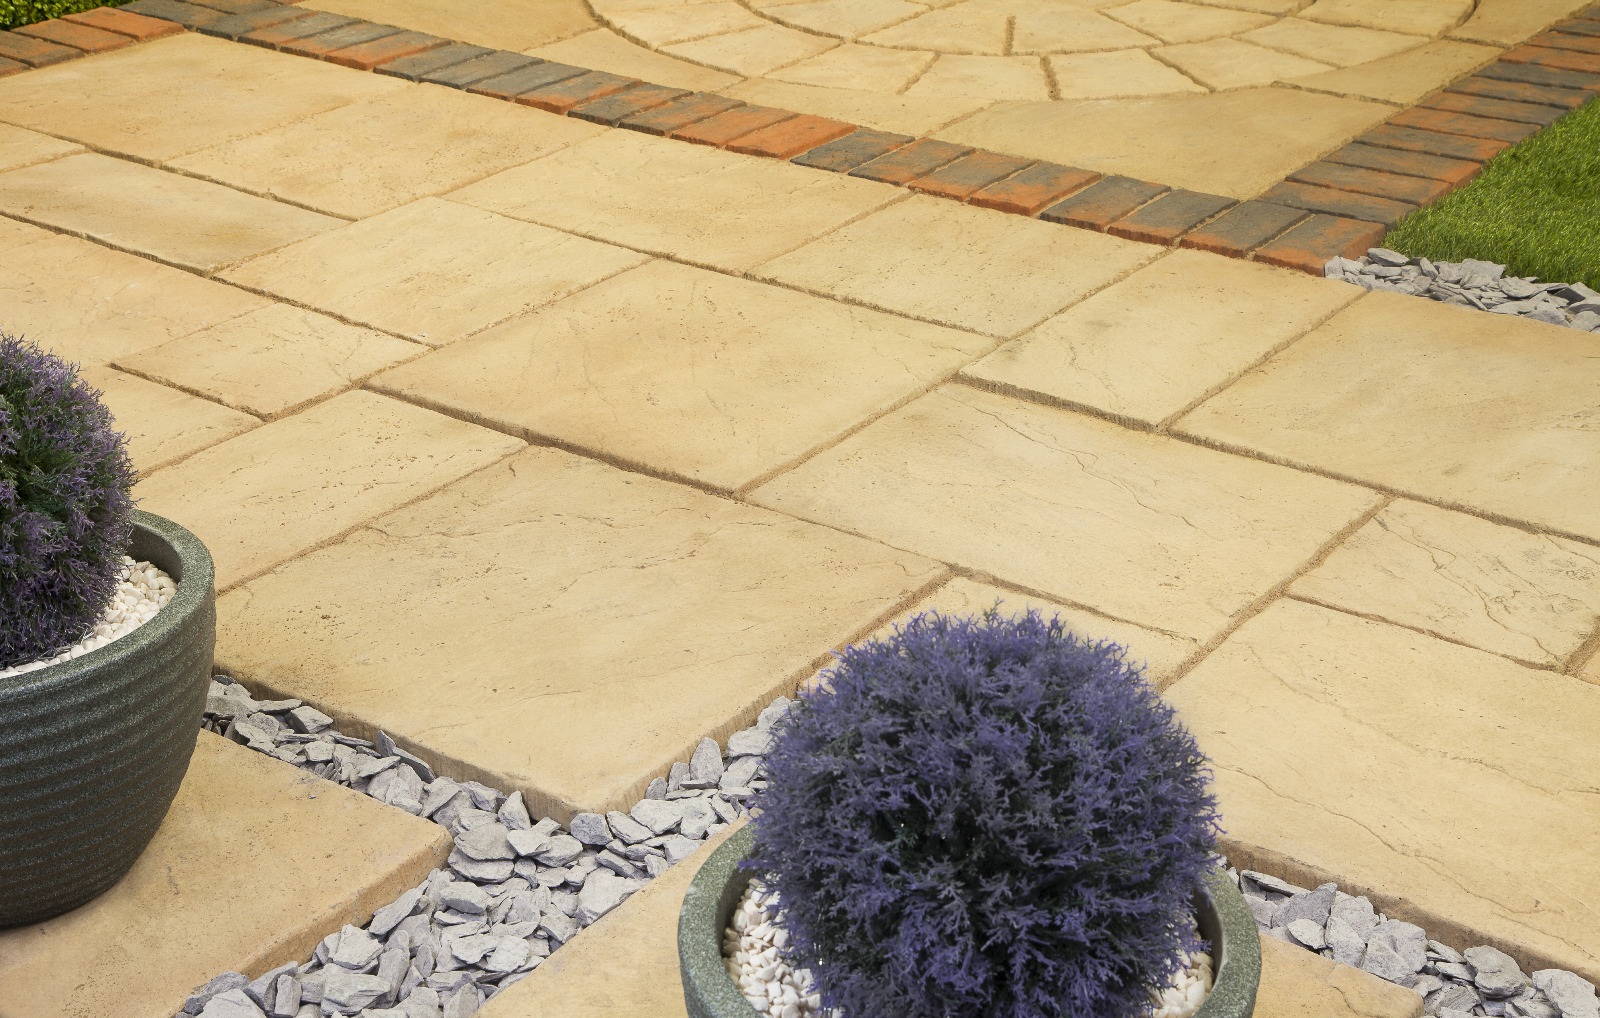 64 No. 600x450x32mm Riven Paving Slabs Weathered Apricot